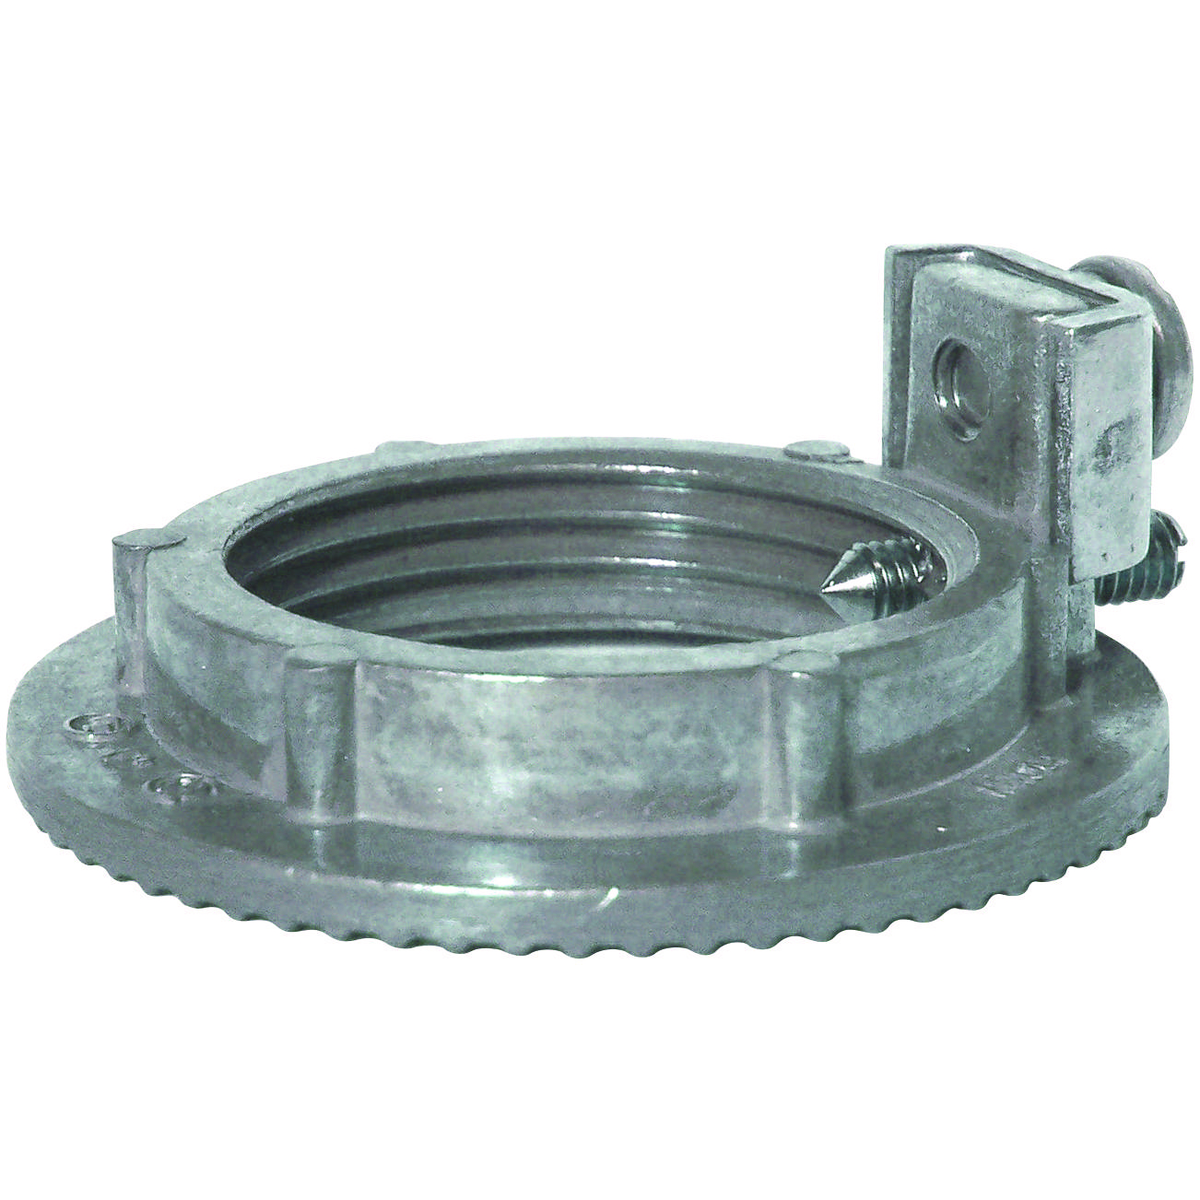 "Killark ZHLN-270 ZHLN Series - Zinc Increased Safety Locknut - For Use With Conduit Hubs- Hub Size 3/4"" NPT"